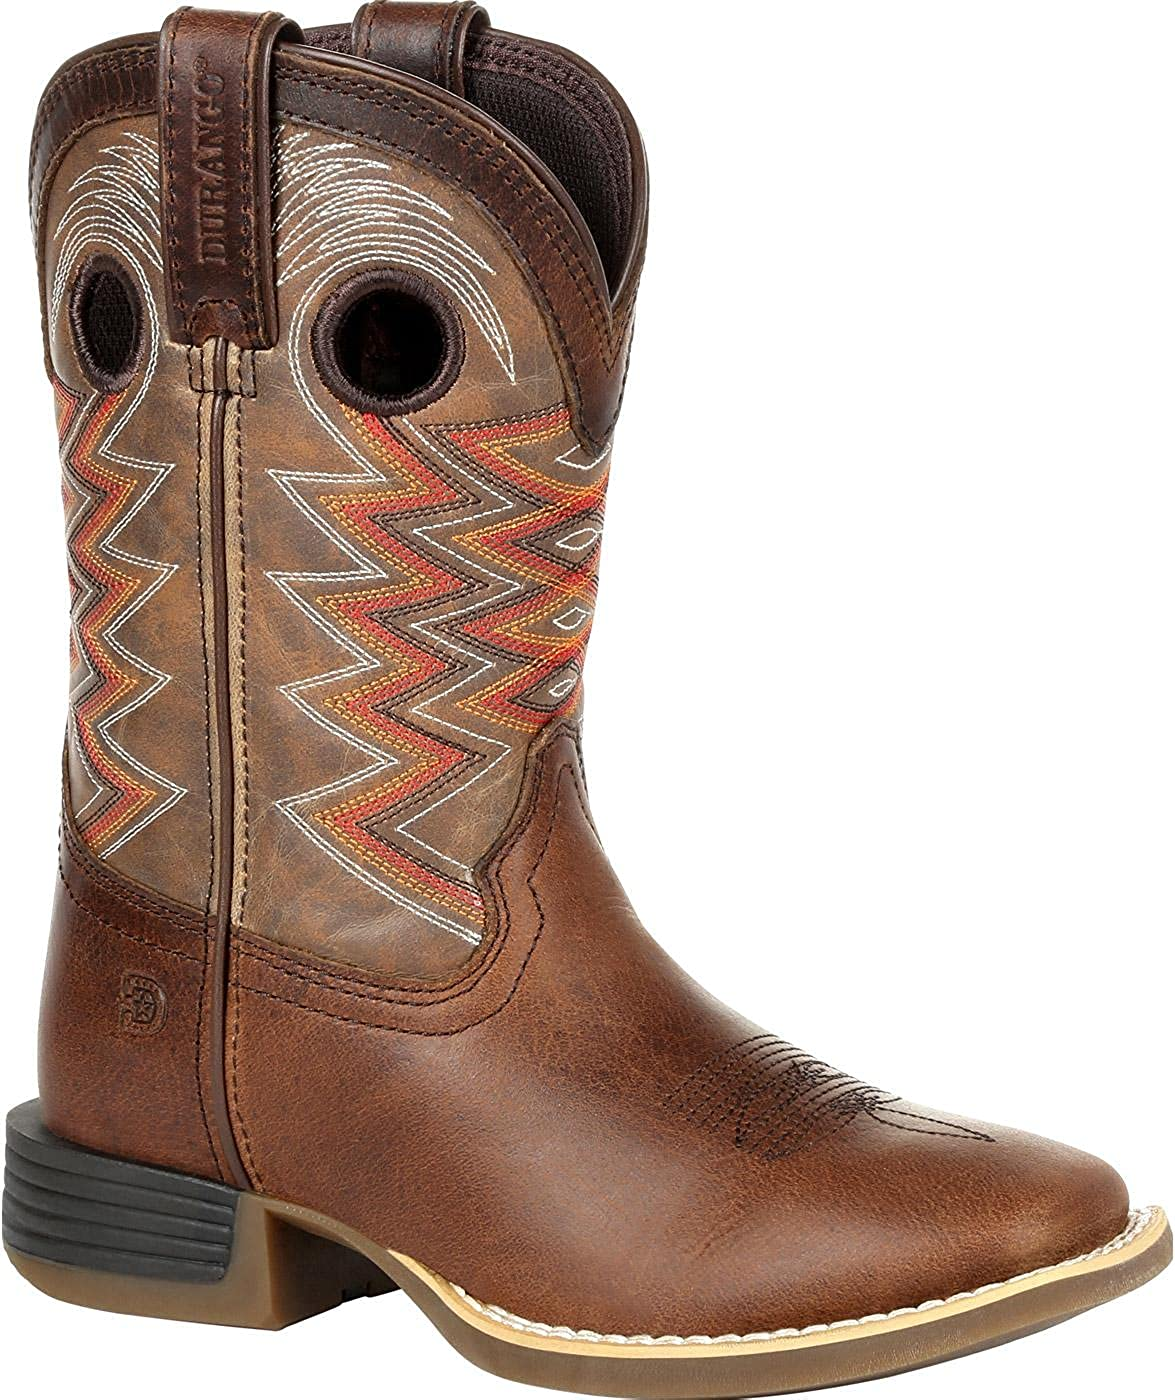 Durango Lil' Rebel Pro Ranking National products TOP2 Big Kid's Boot Western Blue